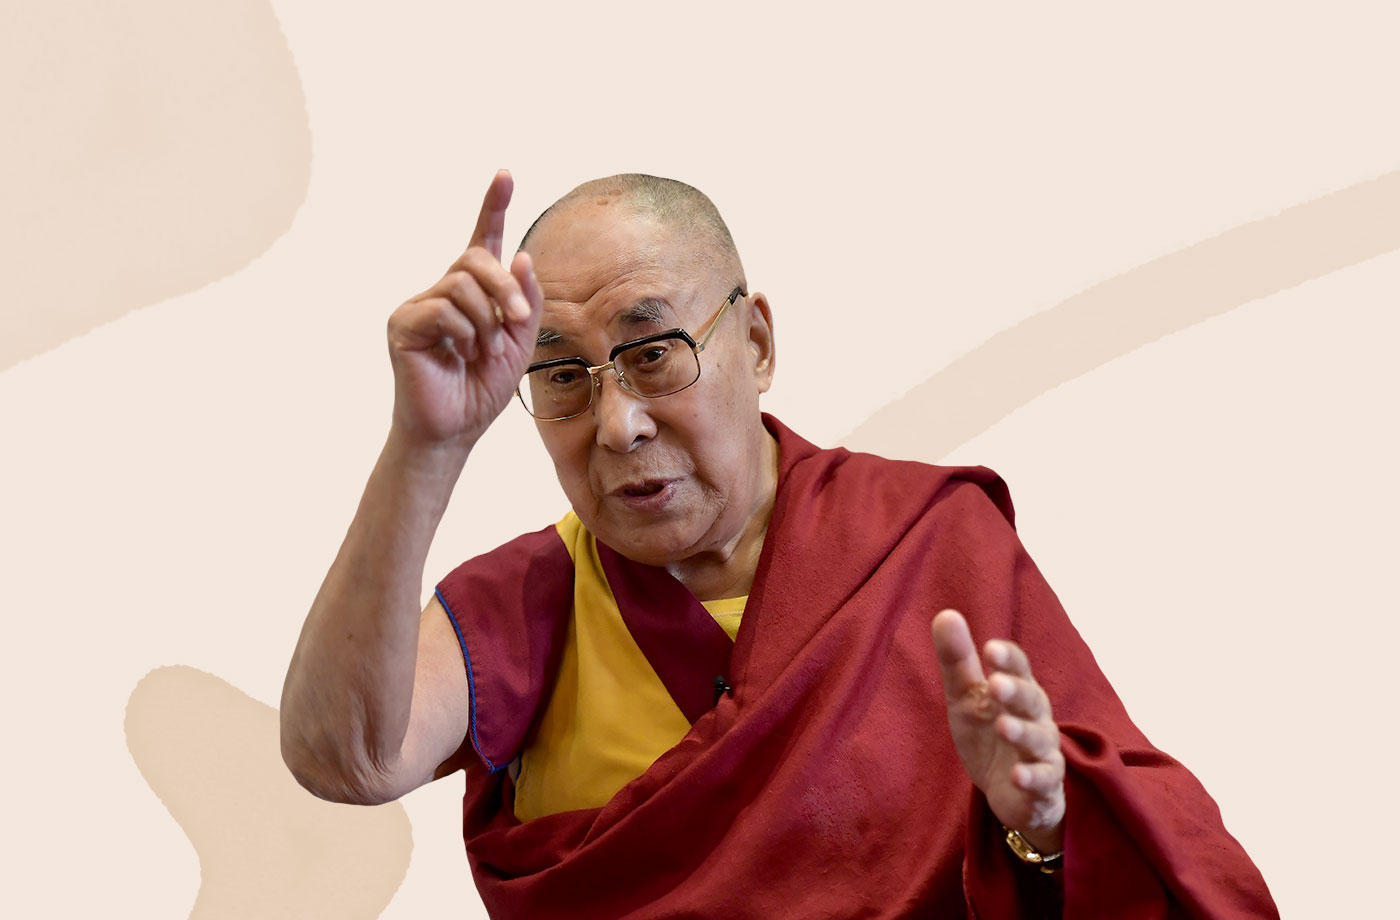 Thumbnail for 6 Tips for Longevity From the Dalai Lama on His 85th Birthday